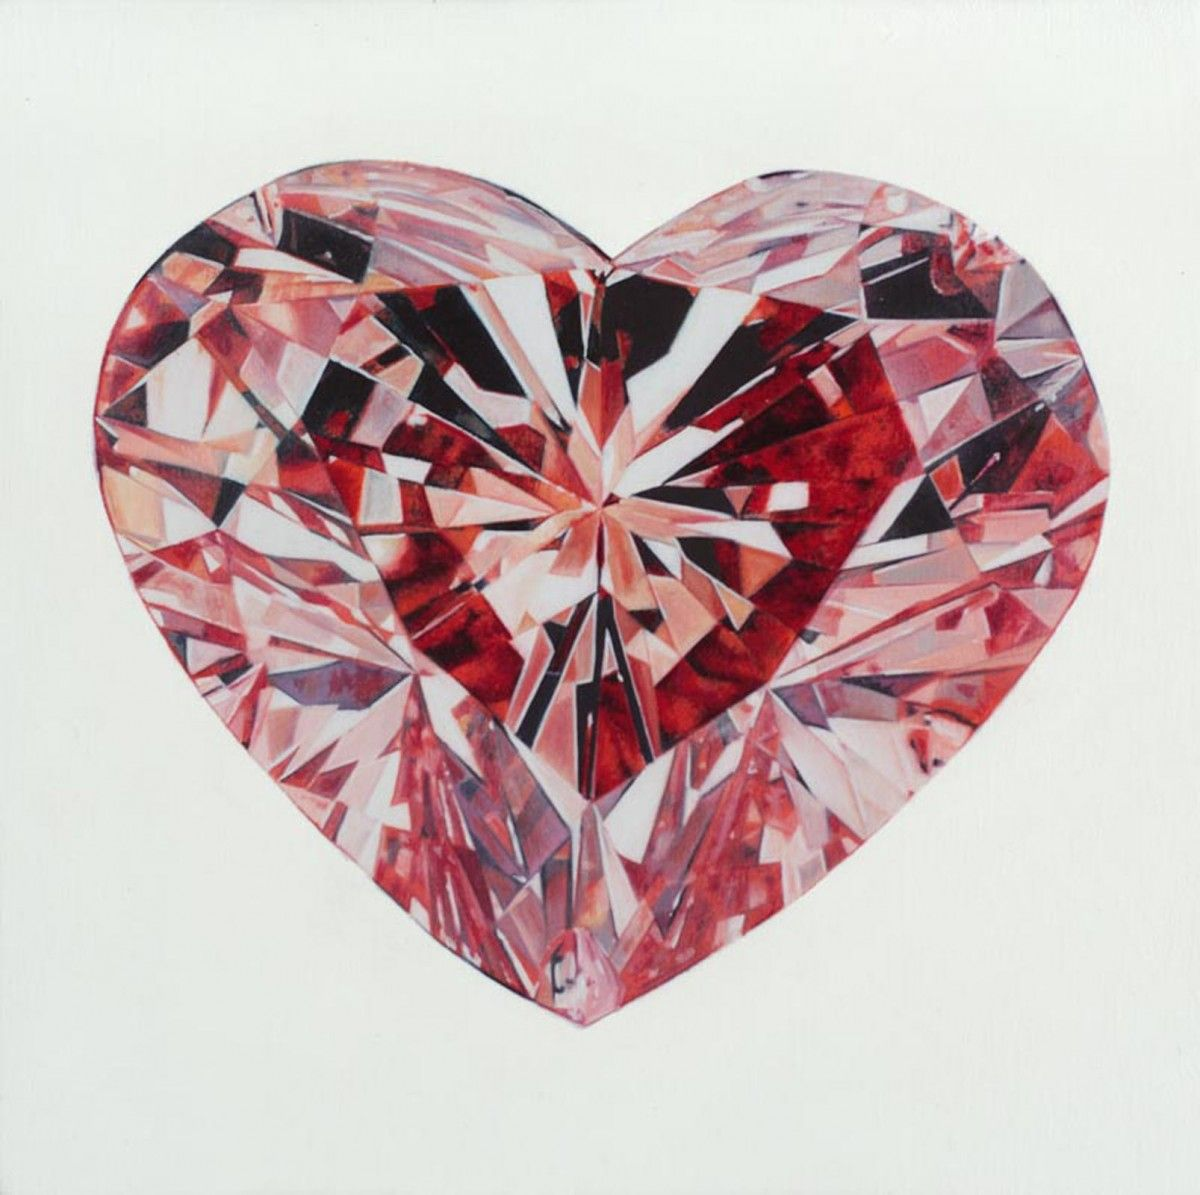 Red Diamond First You Make Your Heart A Stone - Michael Zavros 2007, Oil on Board, 15 x 15cm